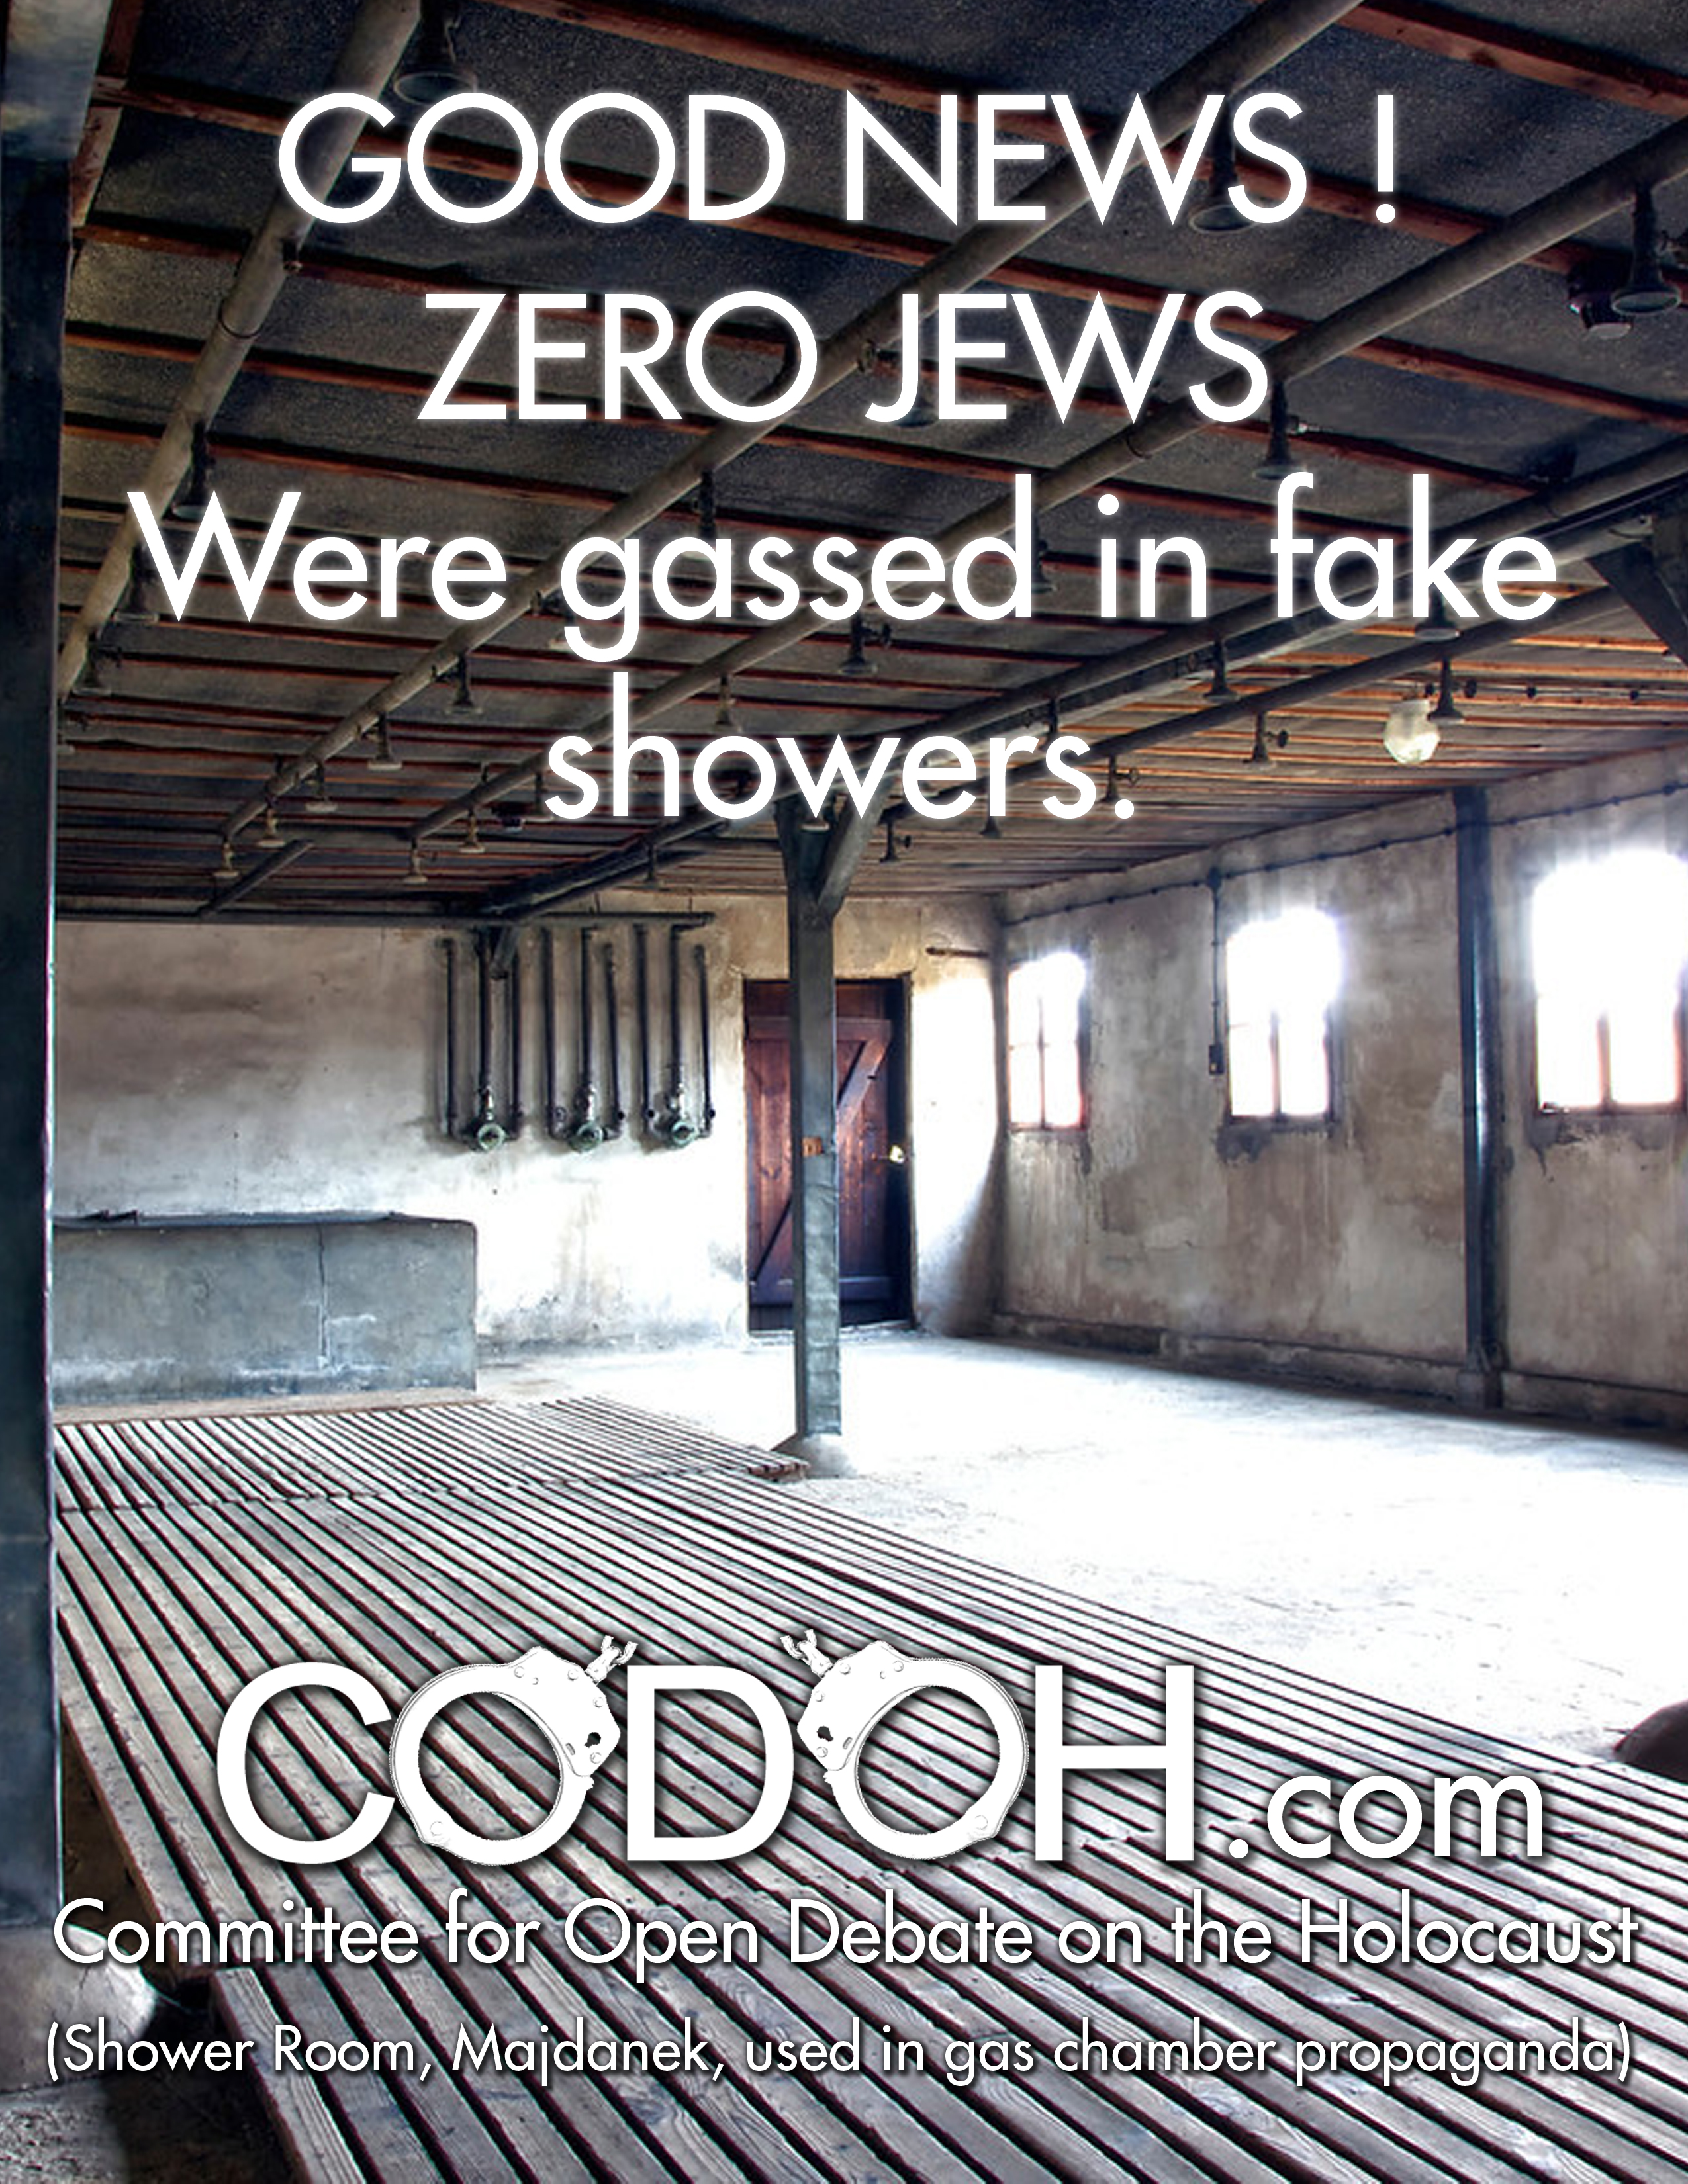 codohposter good news.jpg